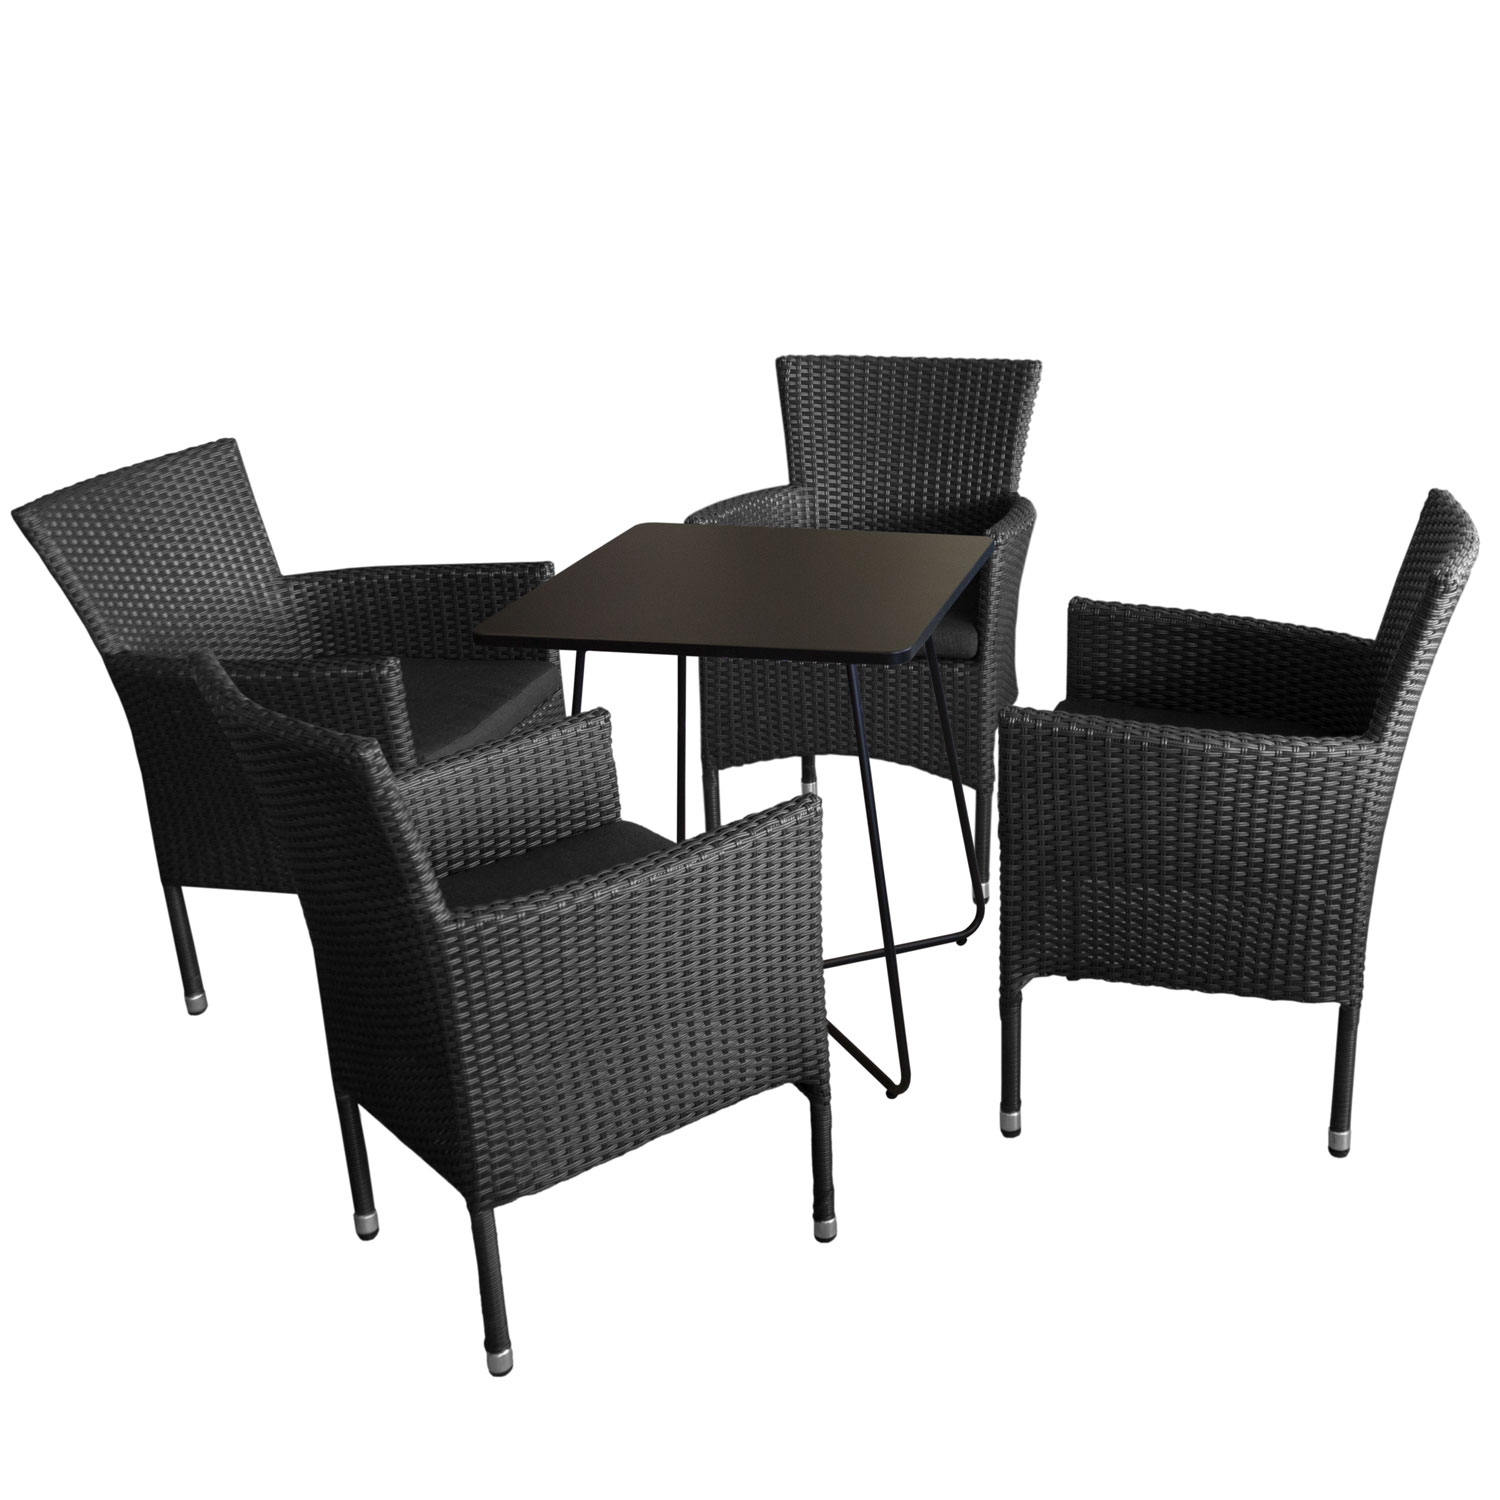 5tlg balkonm bel set 60x60cm schwarz 4x rattansessel kissen schwarz garten bistro und. Black Bedroom Furniture Sets. Home Design Ideas